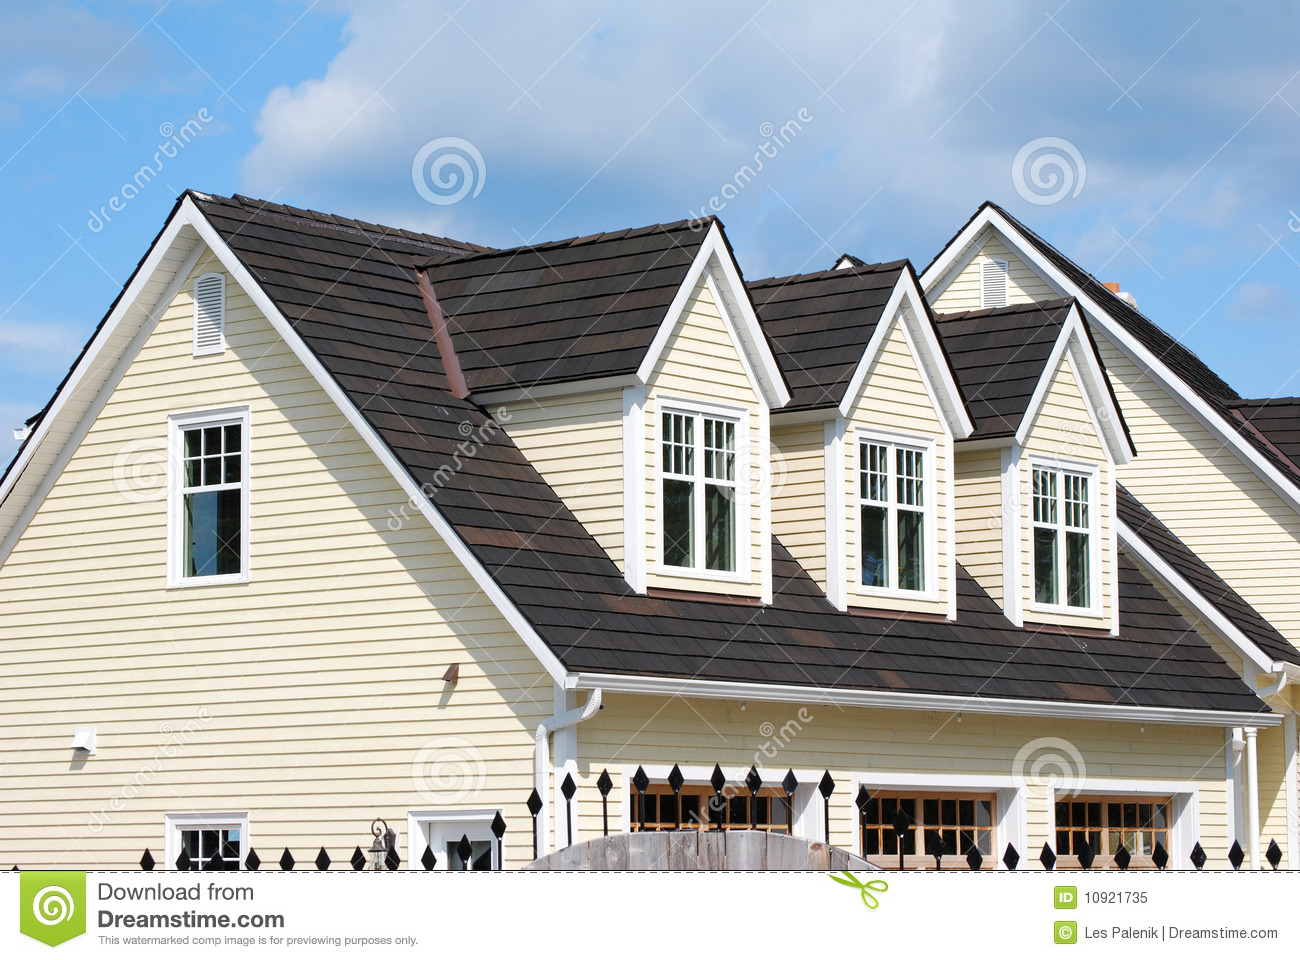 House With 3 Dormers Royalty Free Stock Photo Image